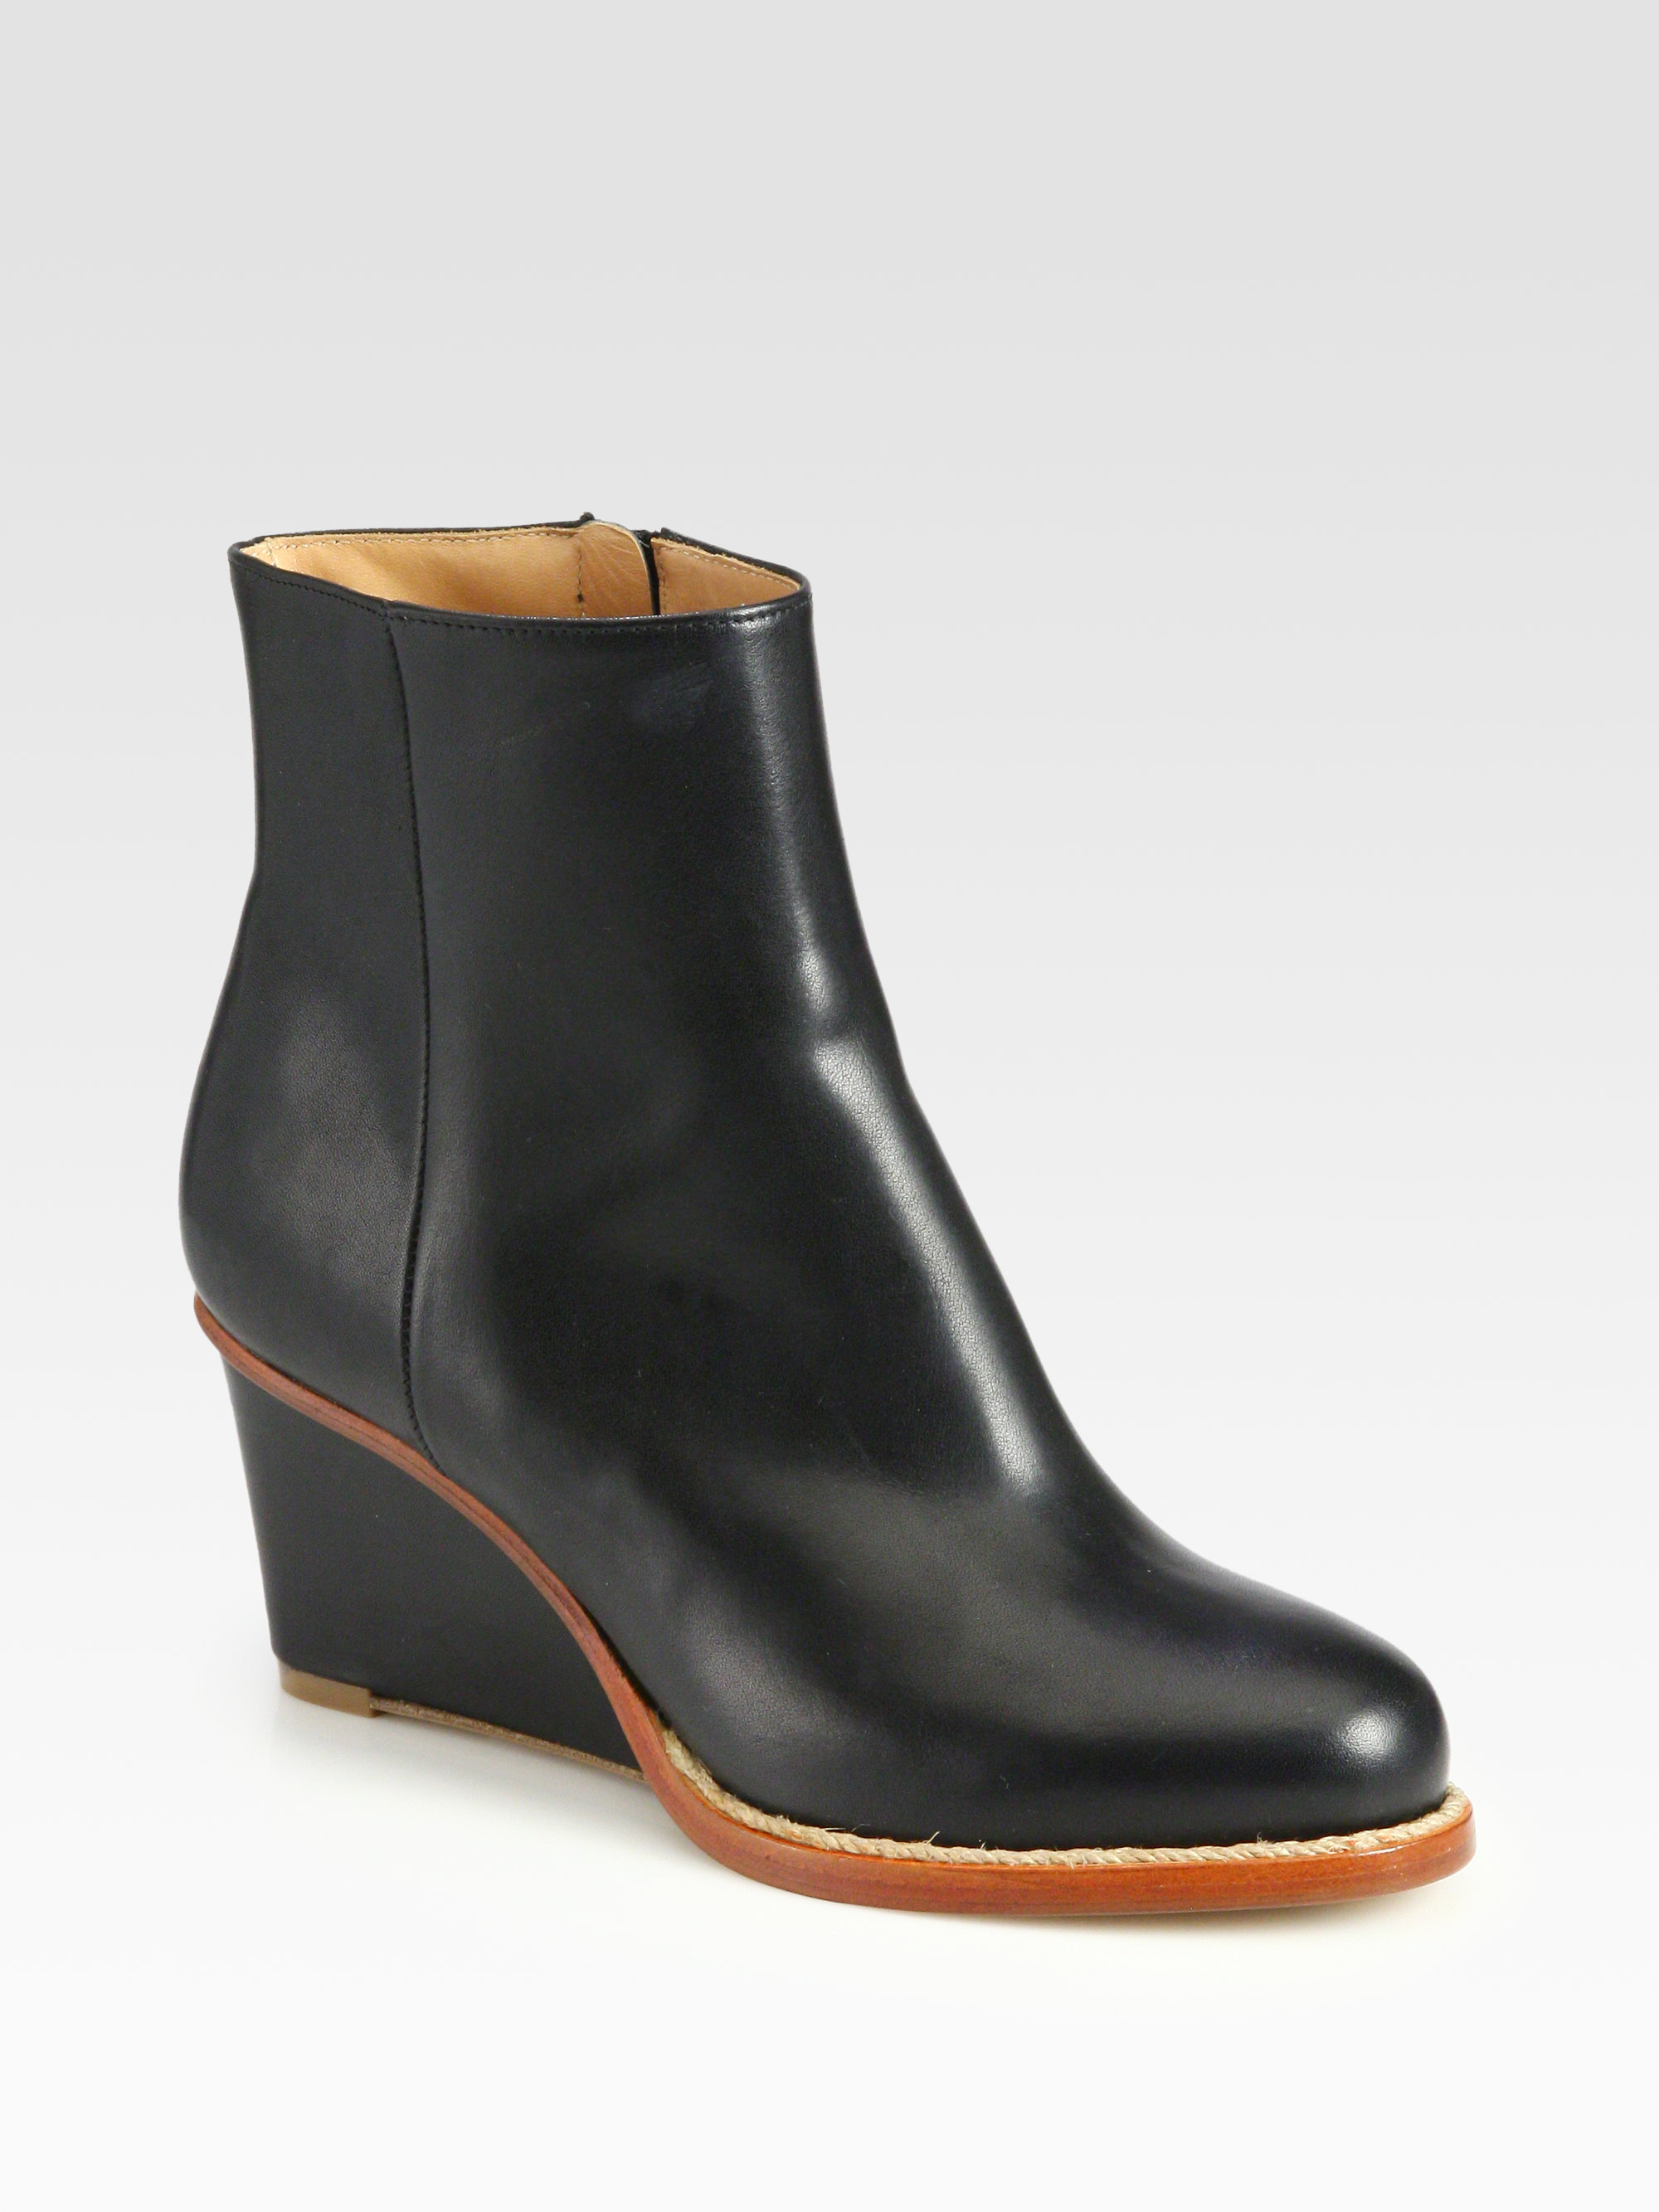 maison margiela leather wedge ankle boots in black anthracite lyst. Black Bedroom Furniture Sets. Home Design Ideas